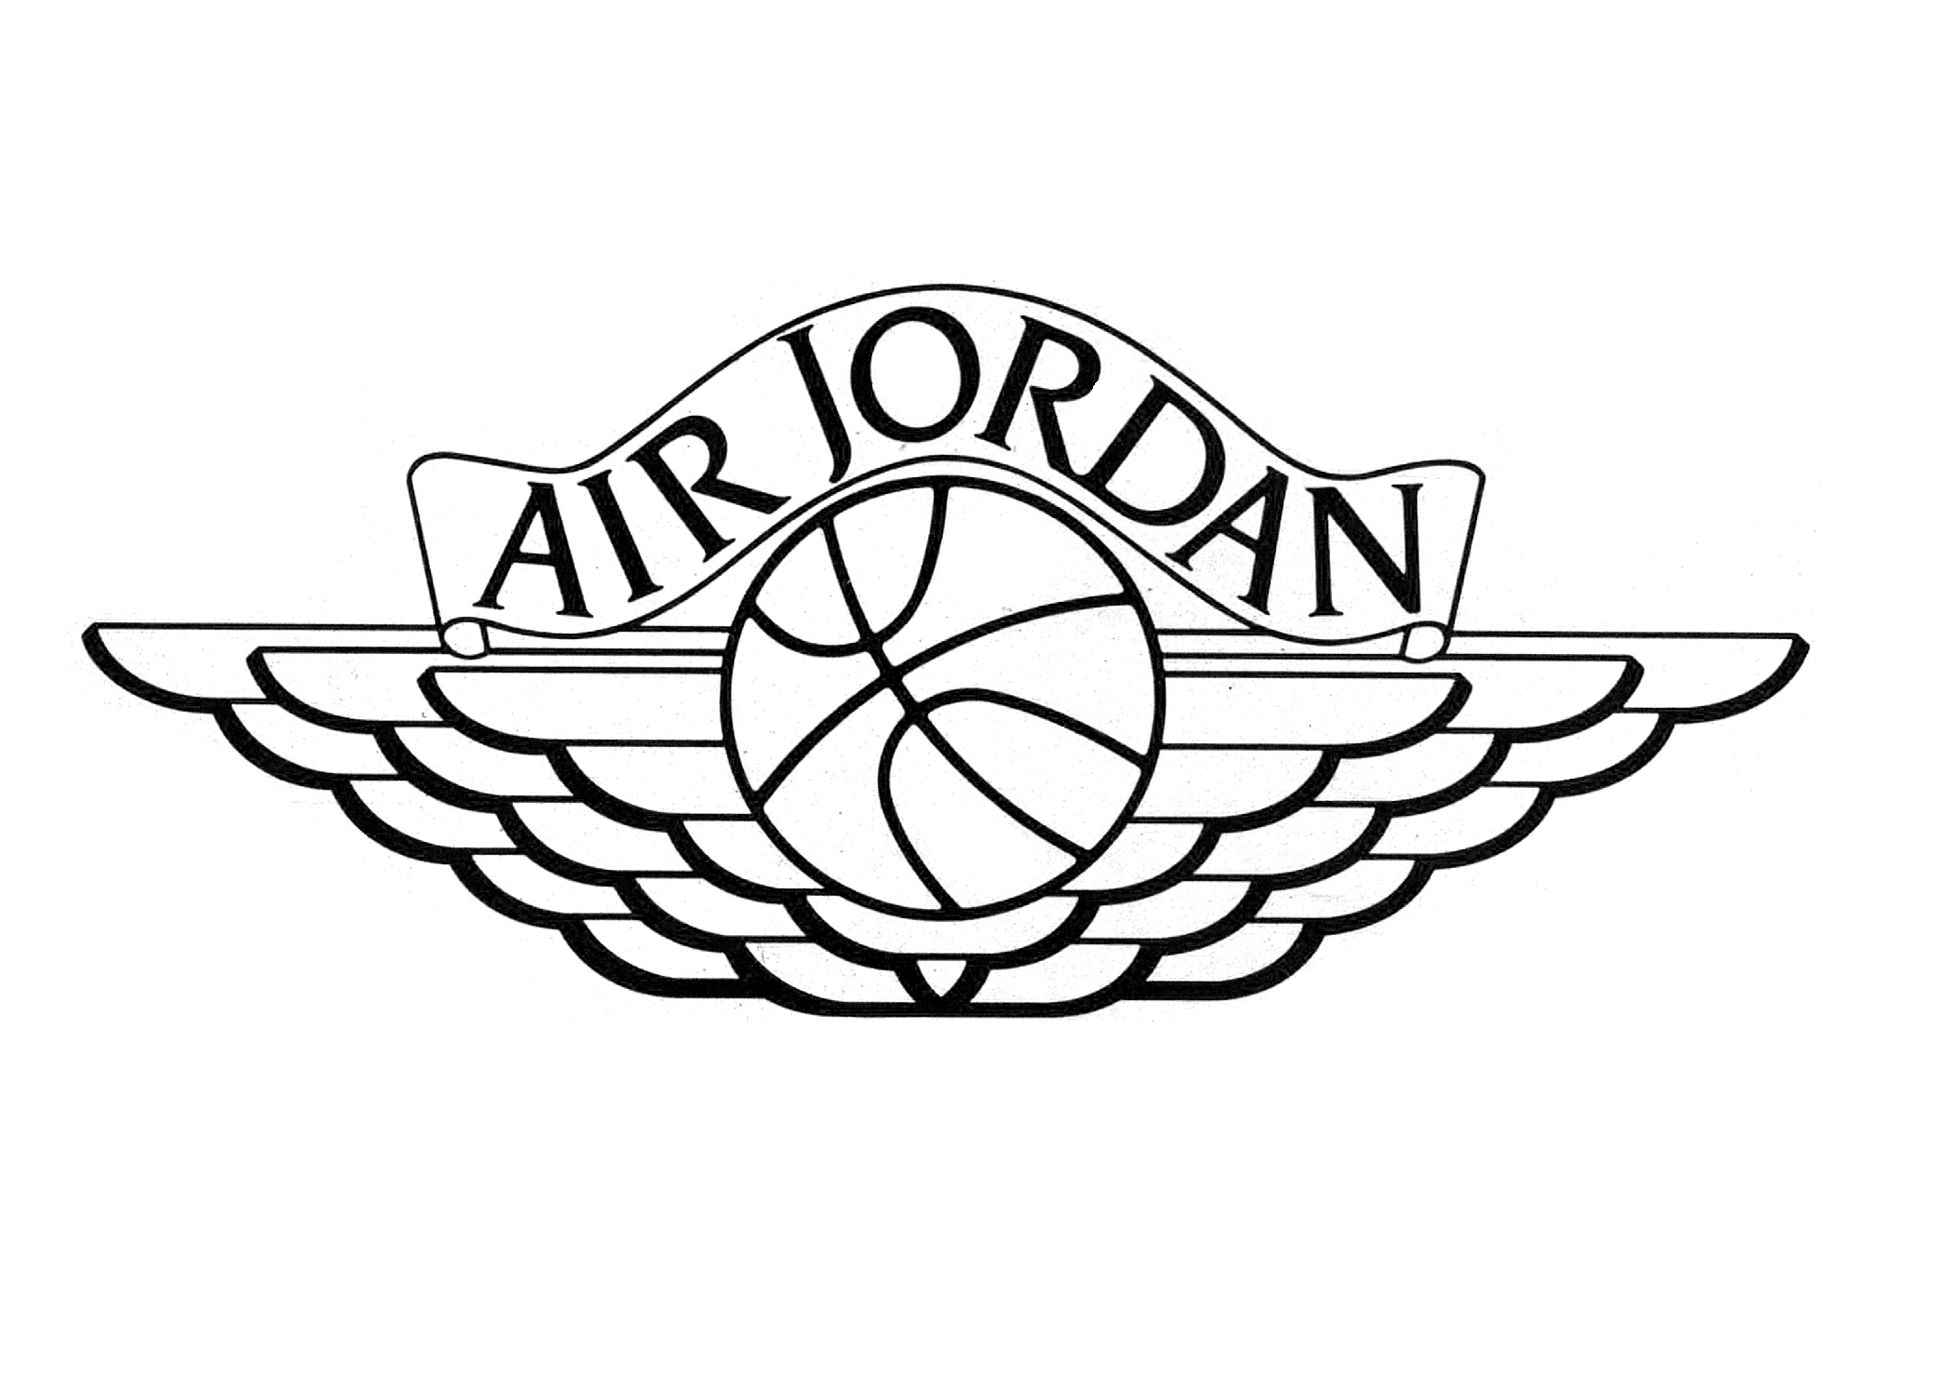 Air jordan flight logo google search boys bar mitzvah ideas bar mitzvah biocorpaavc Gallery